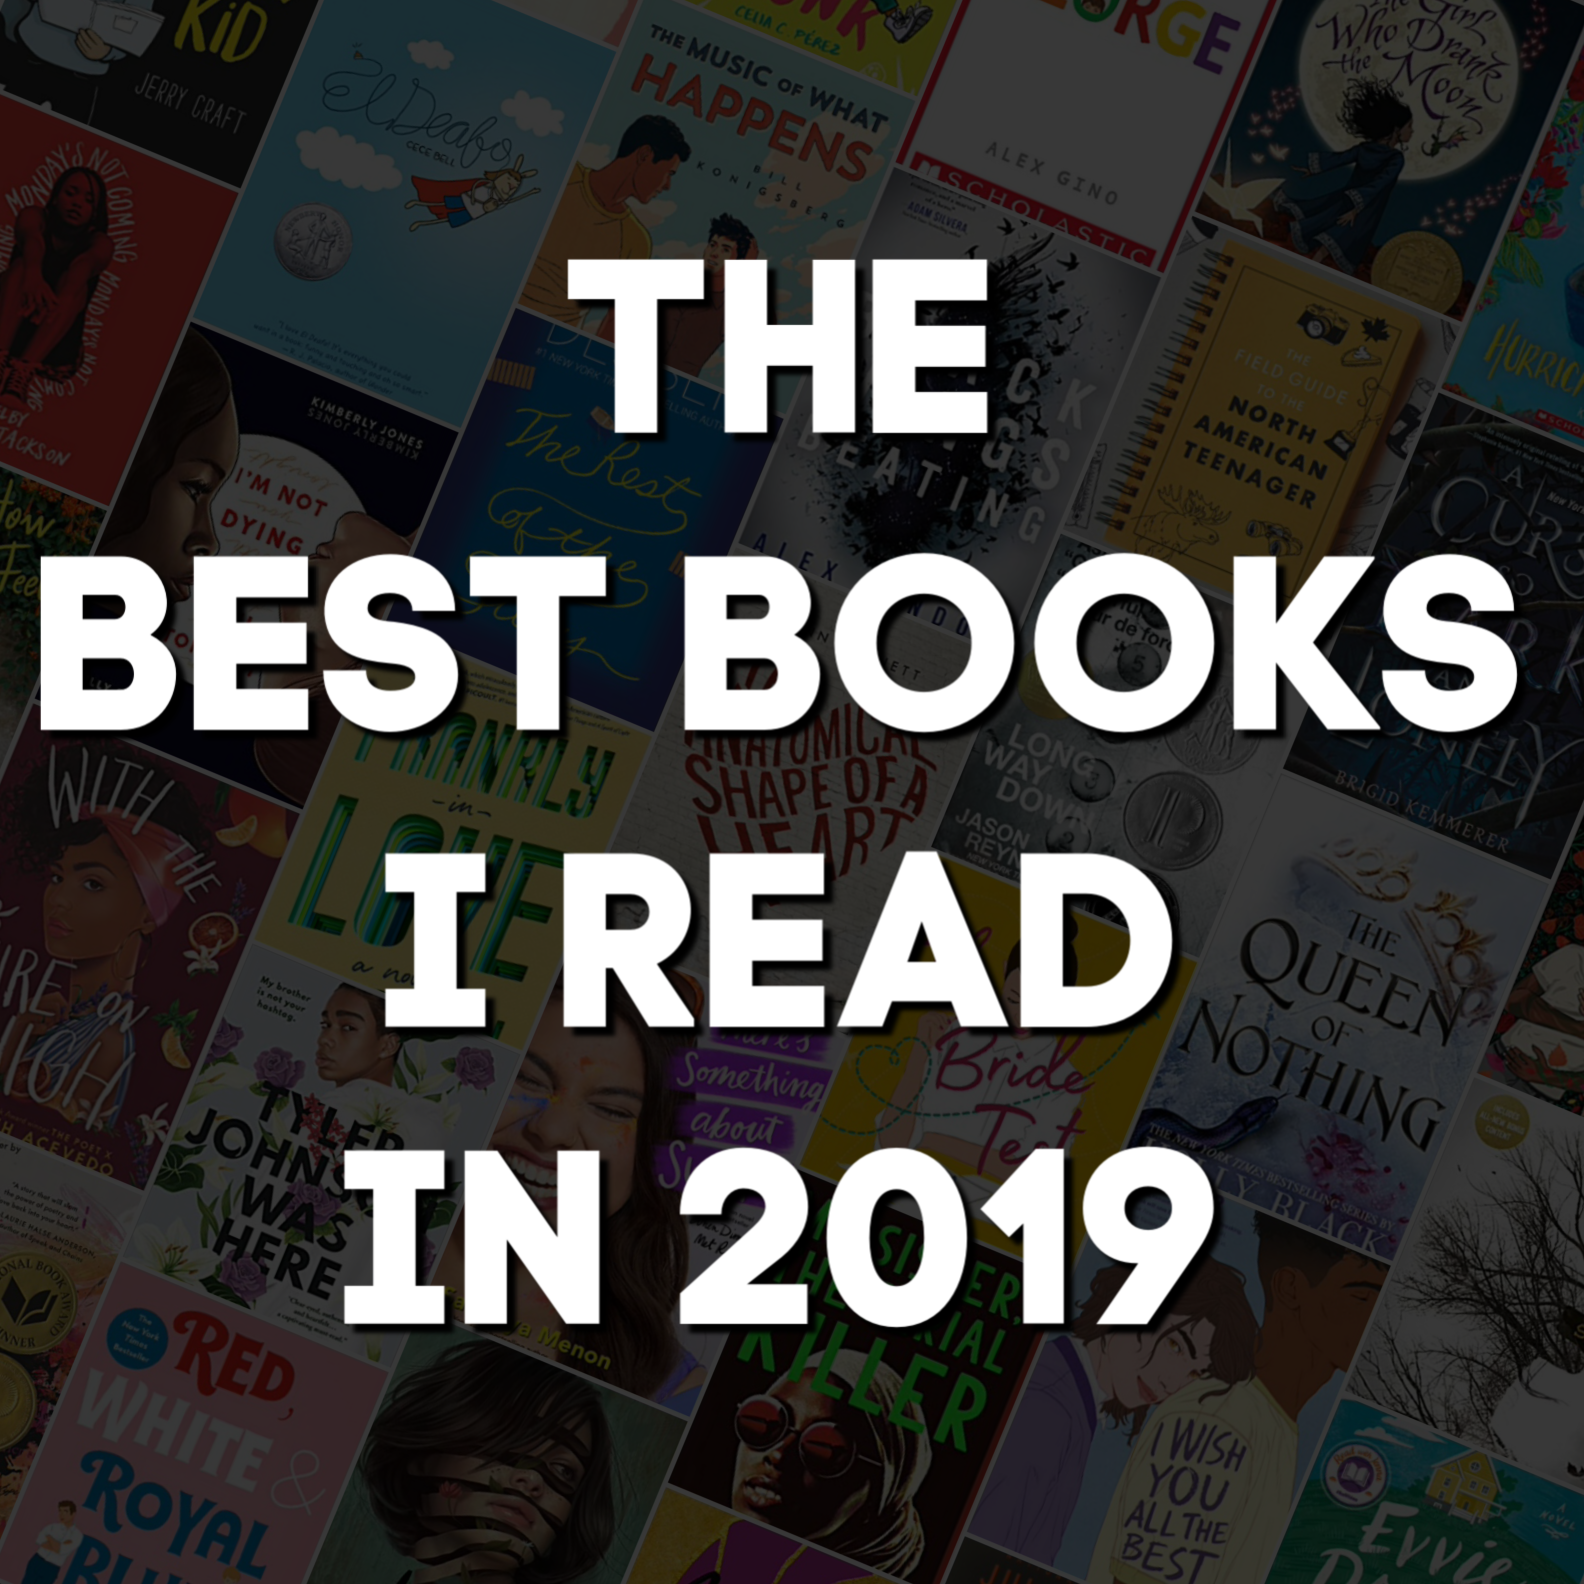 The Best Books I Read in 2019 by @letmestart including books for kids, teens, and adults